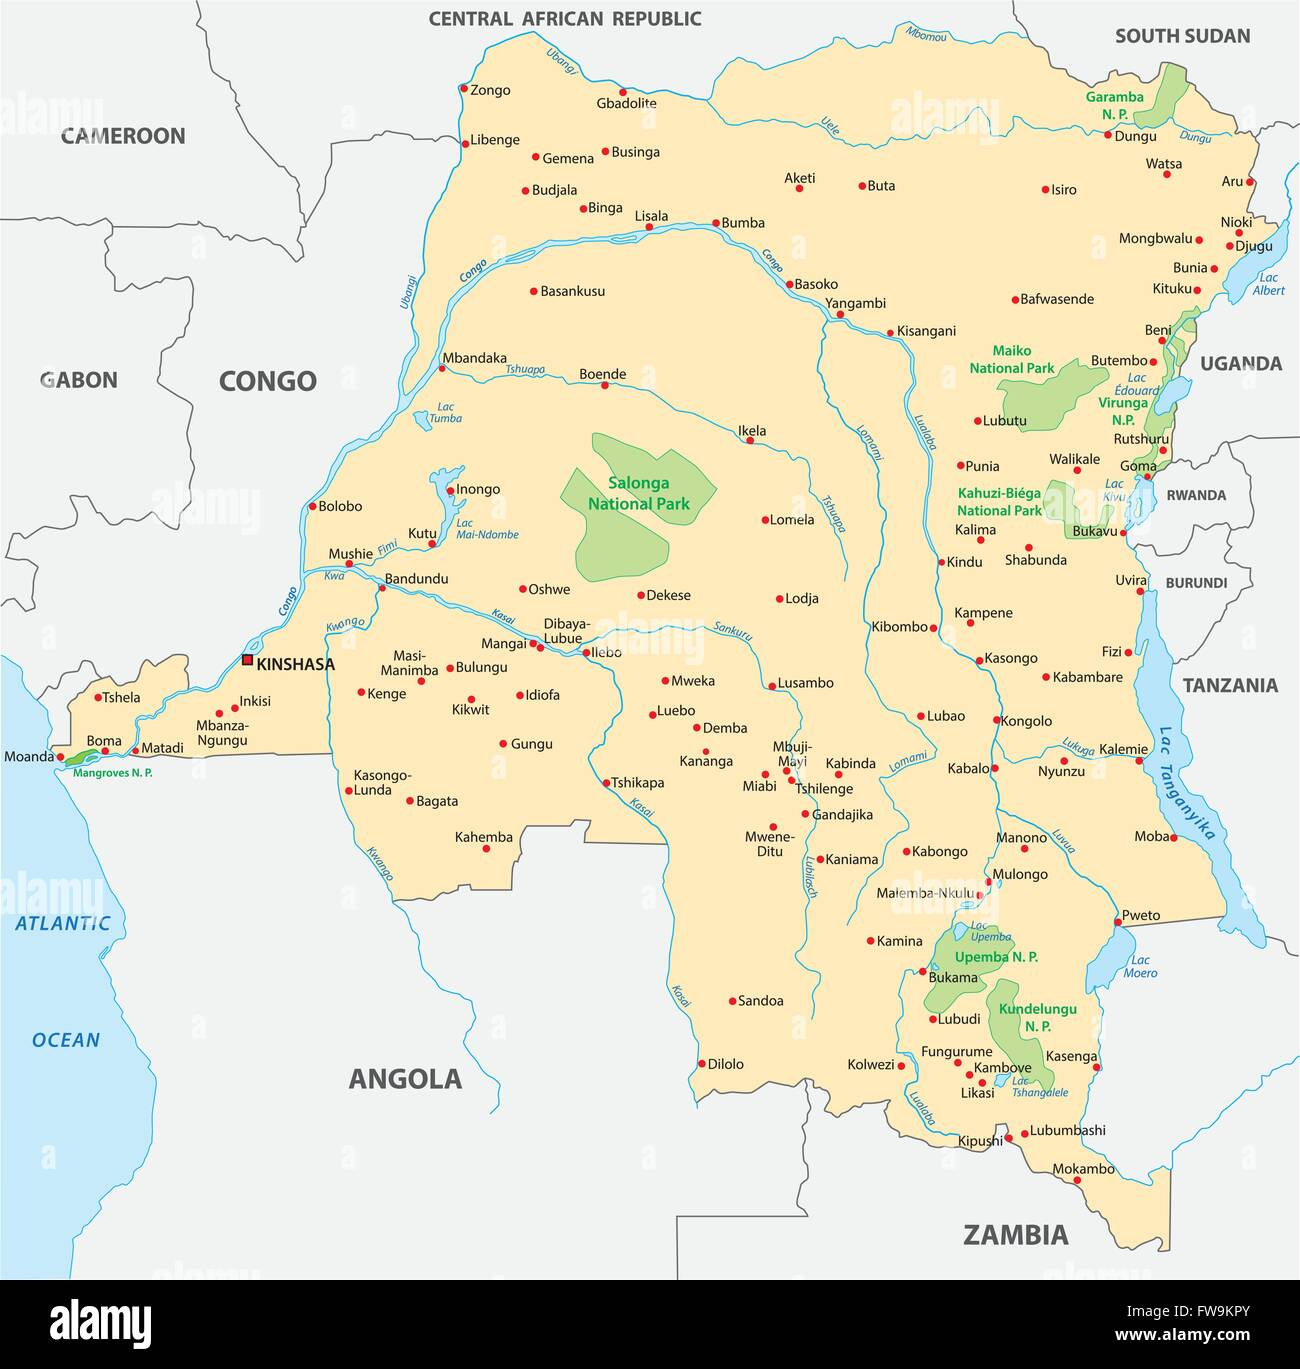 democratic republic of the congo map - Stock Image